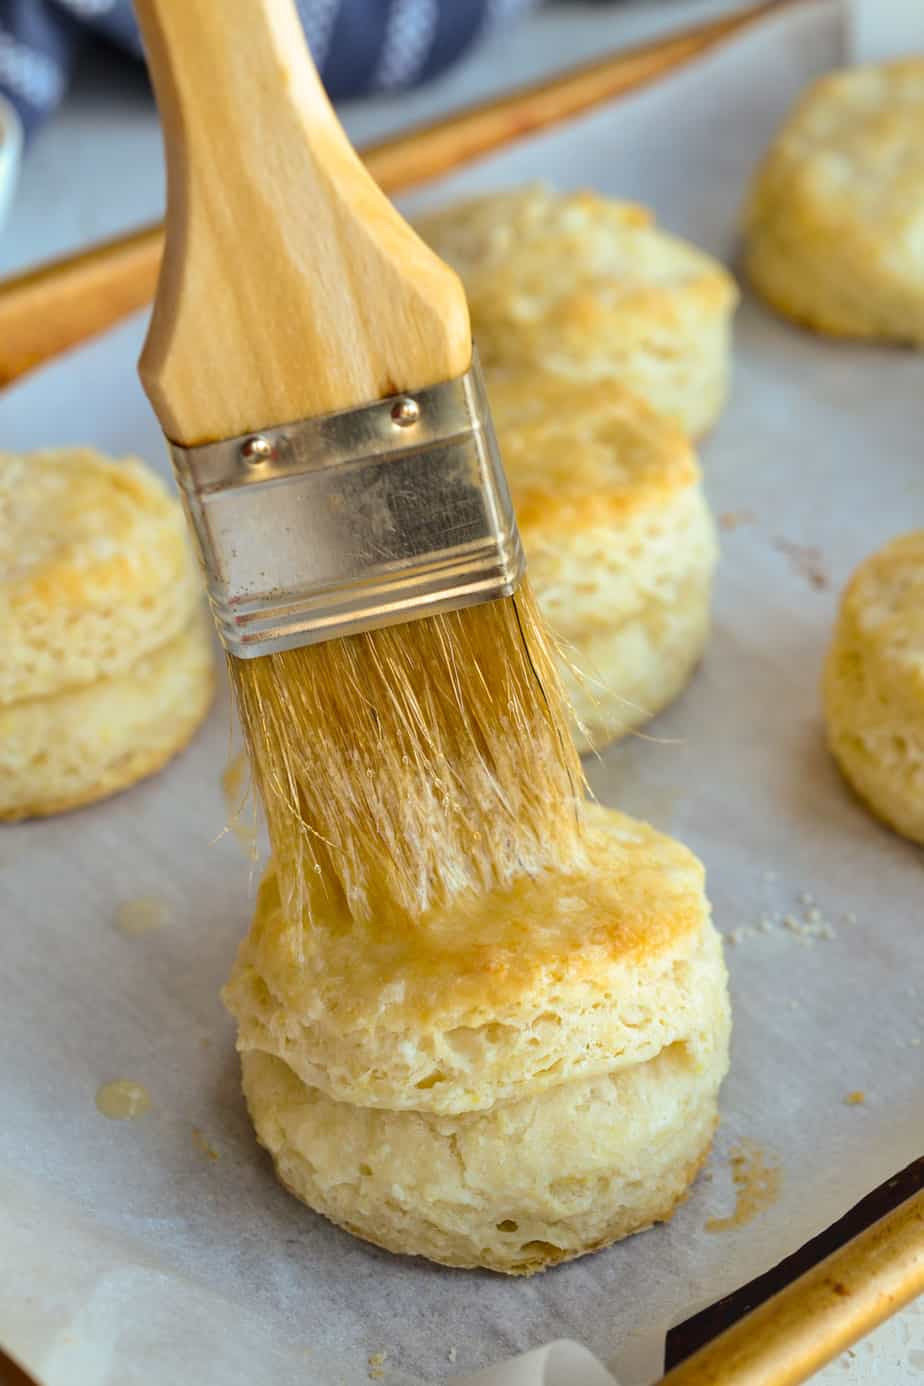 There is nothing better than warm flaky buttermilk homemade biscuits.